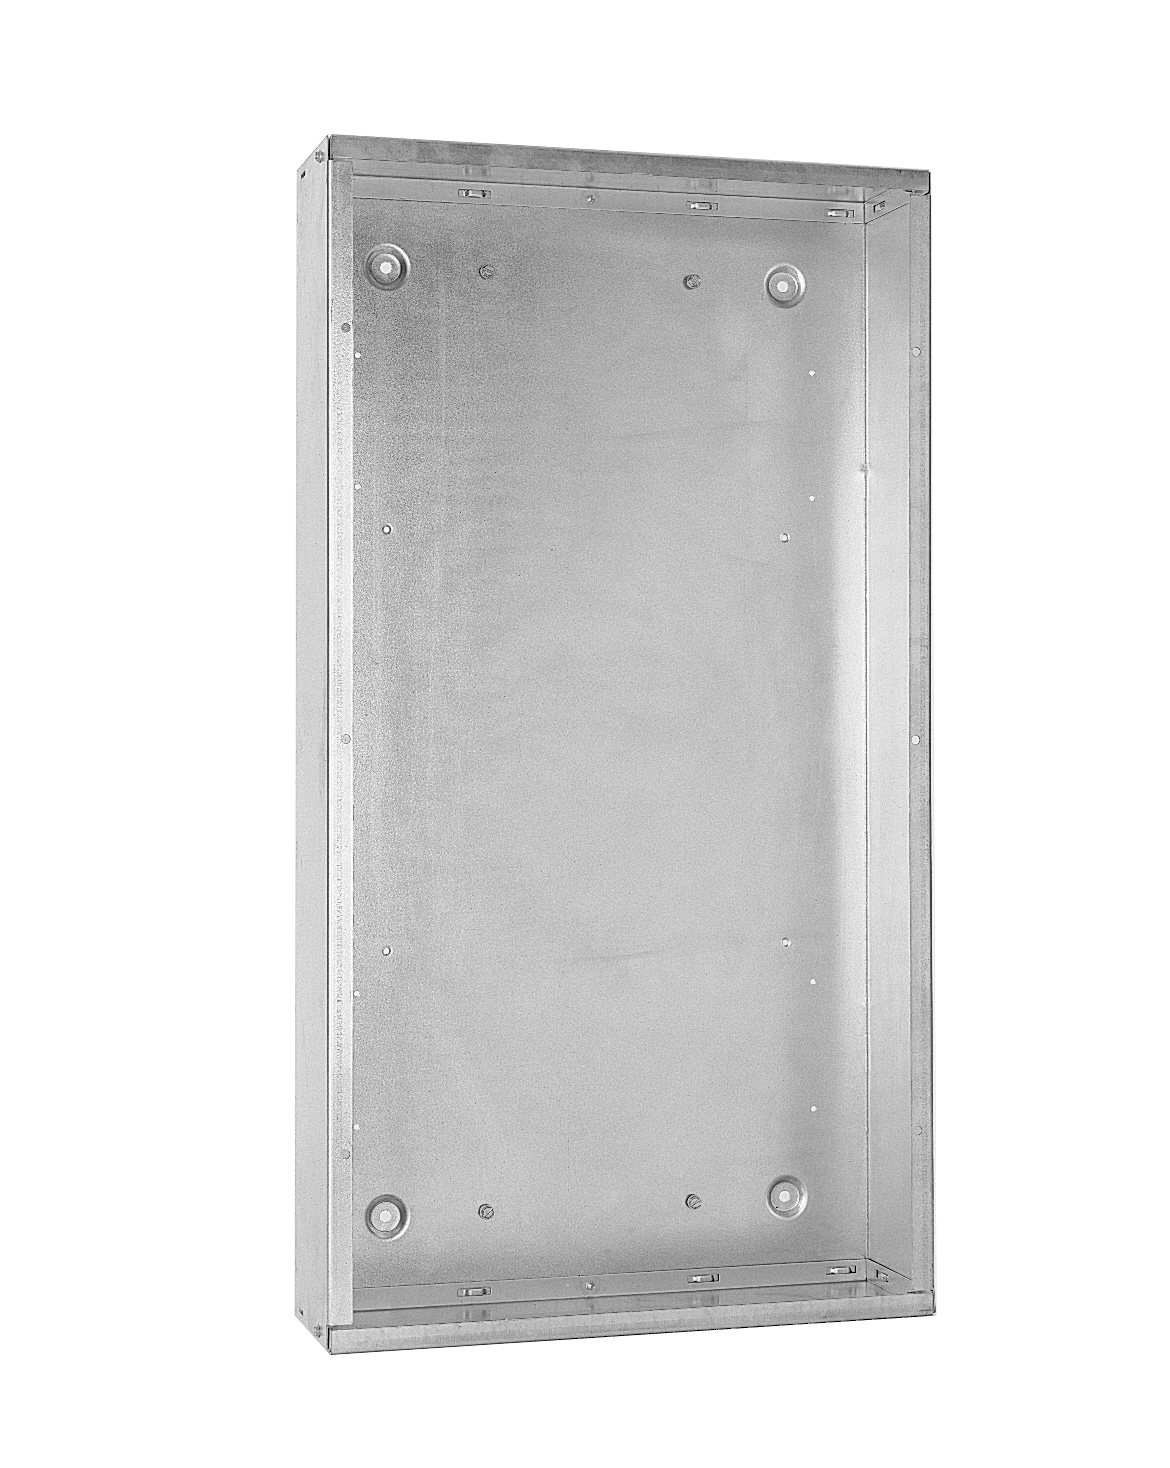 GE Industrial Solutions AB43B 20 x 43.5 Inch NEMA 1 Panelboard Enclosure Panel